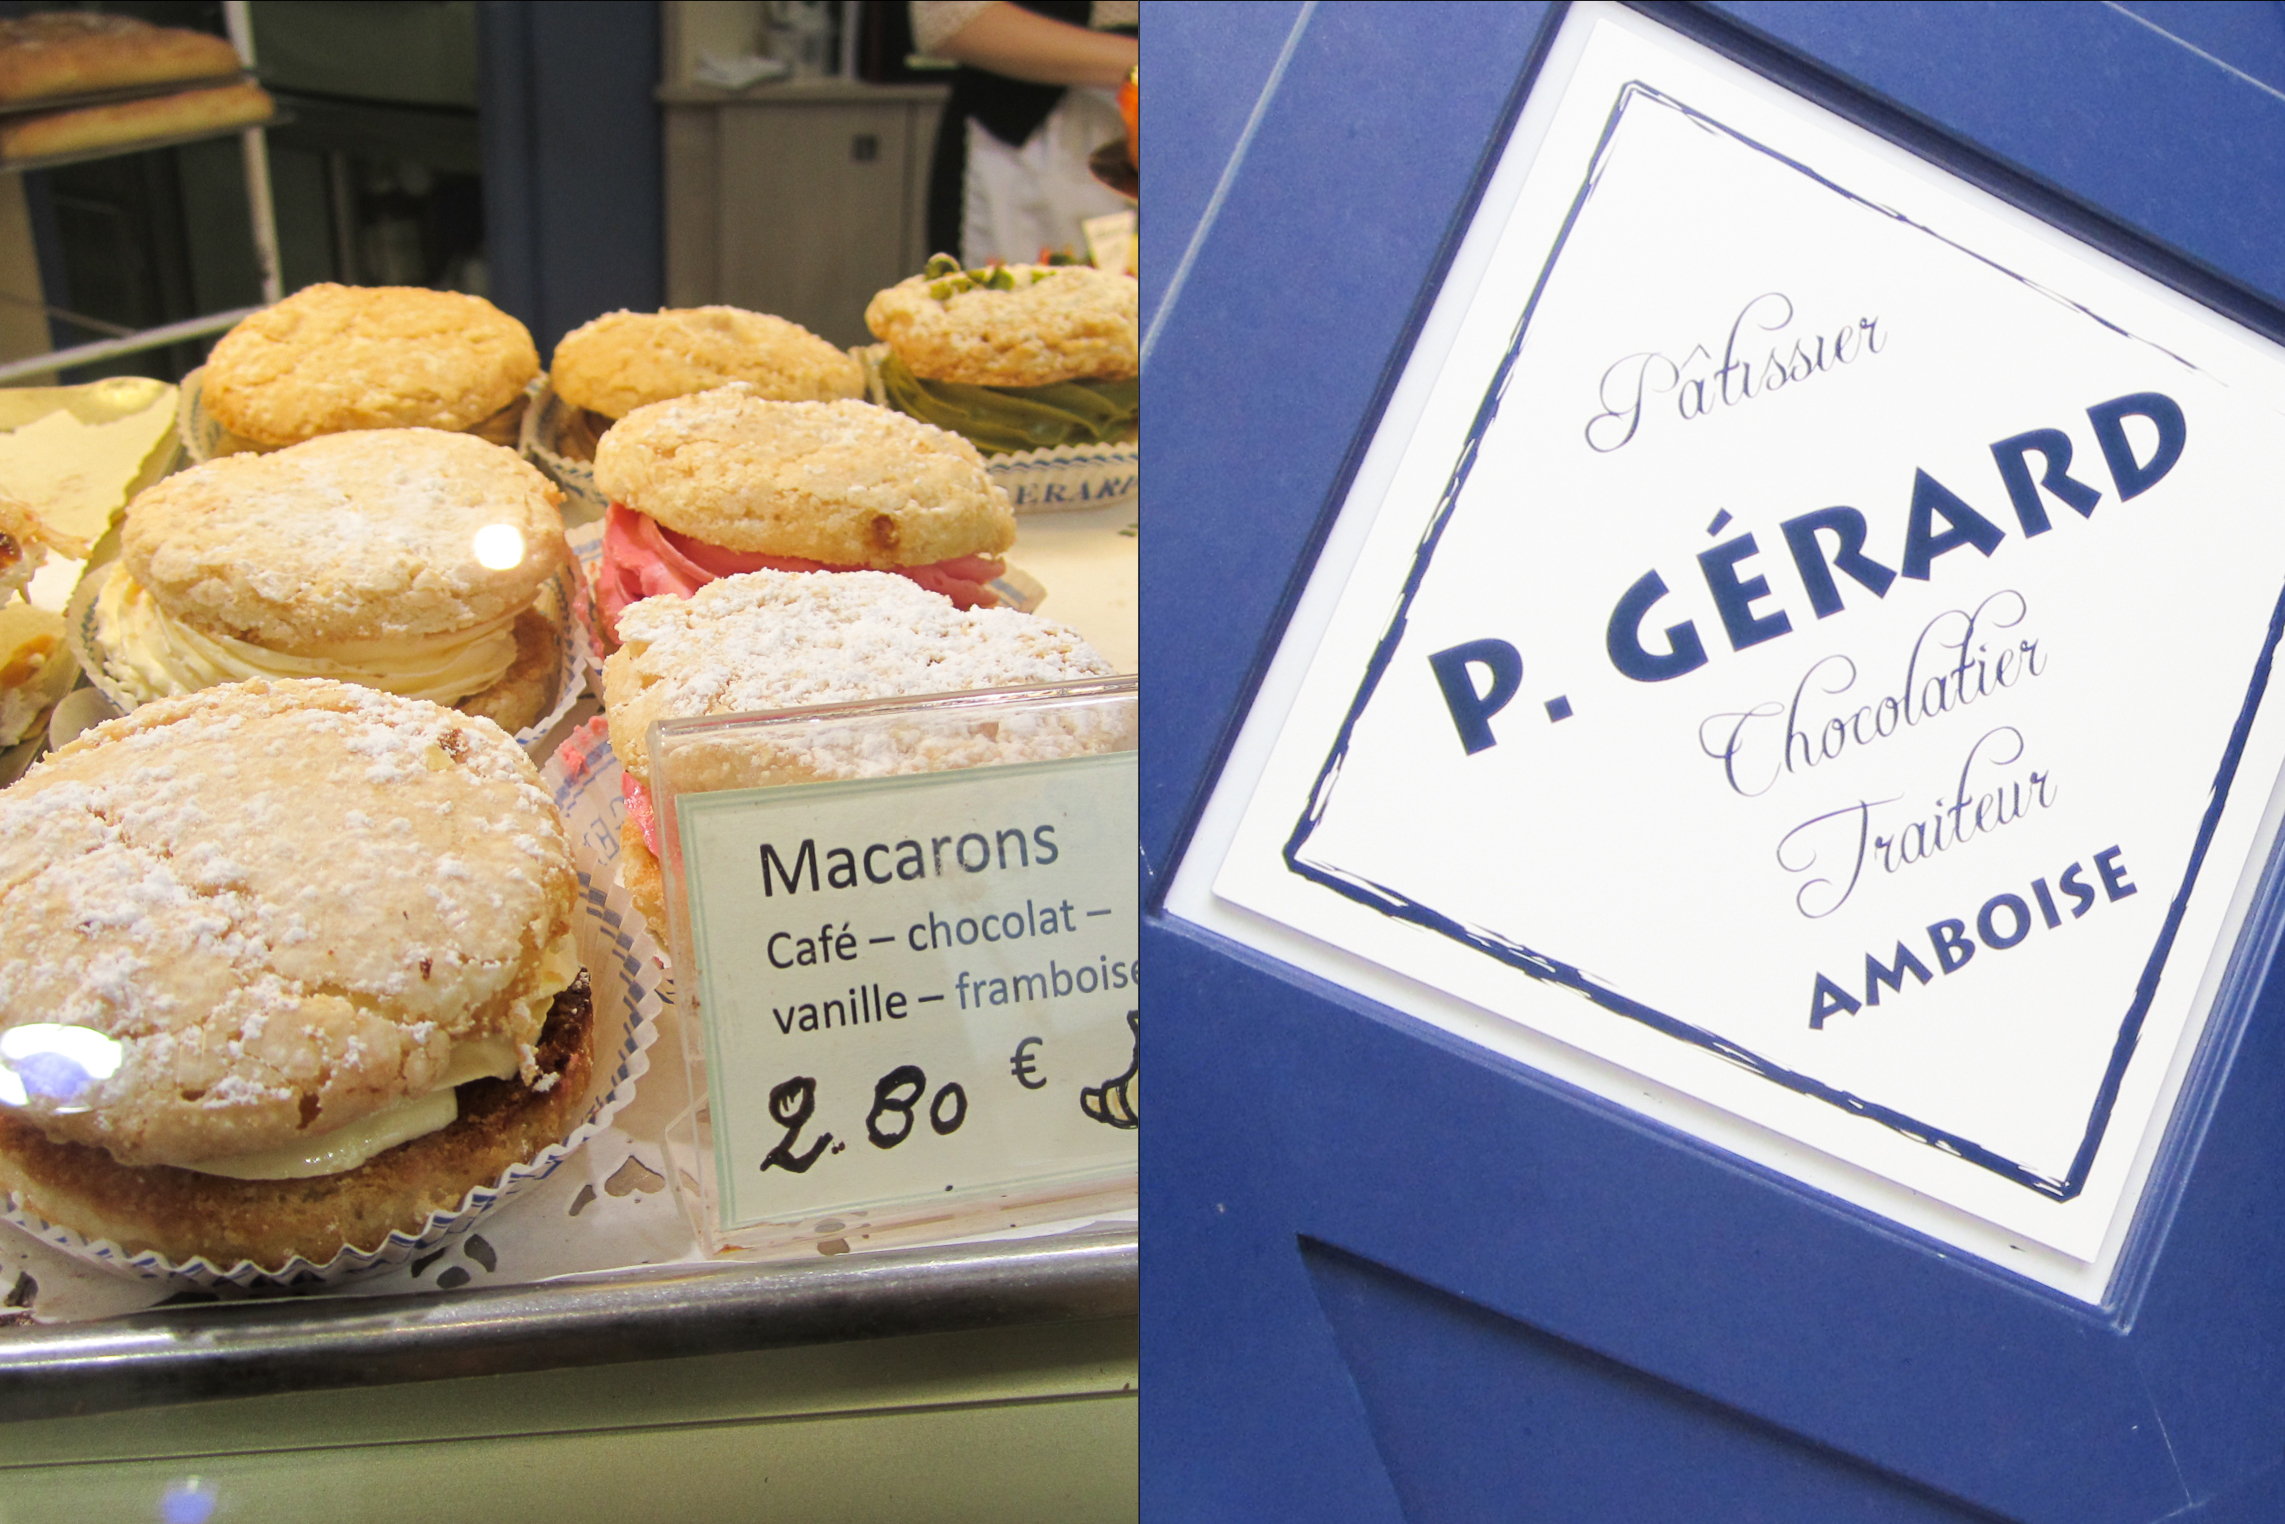 Macarons from P. Gerard in Amboise